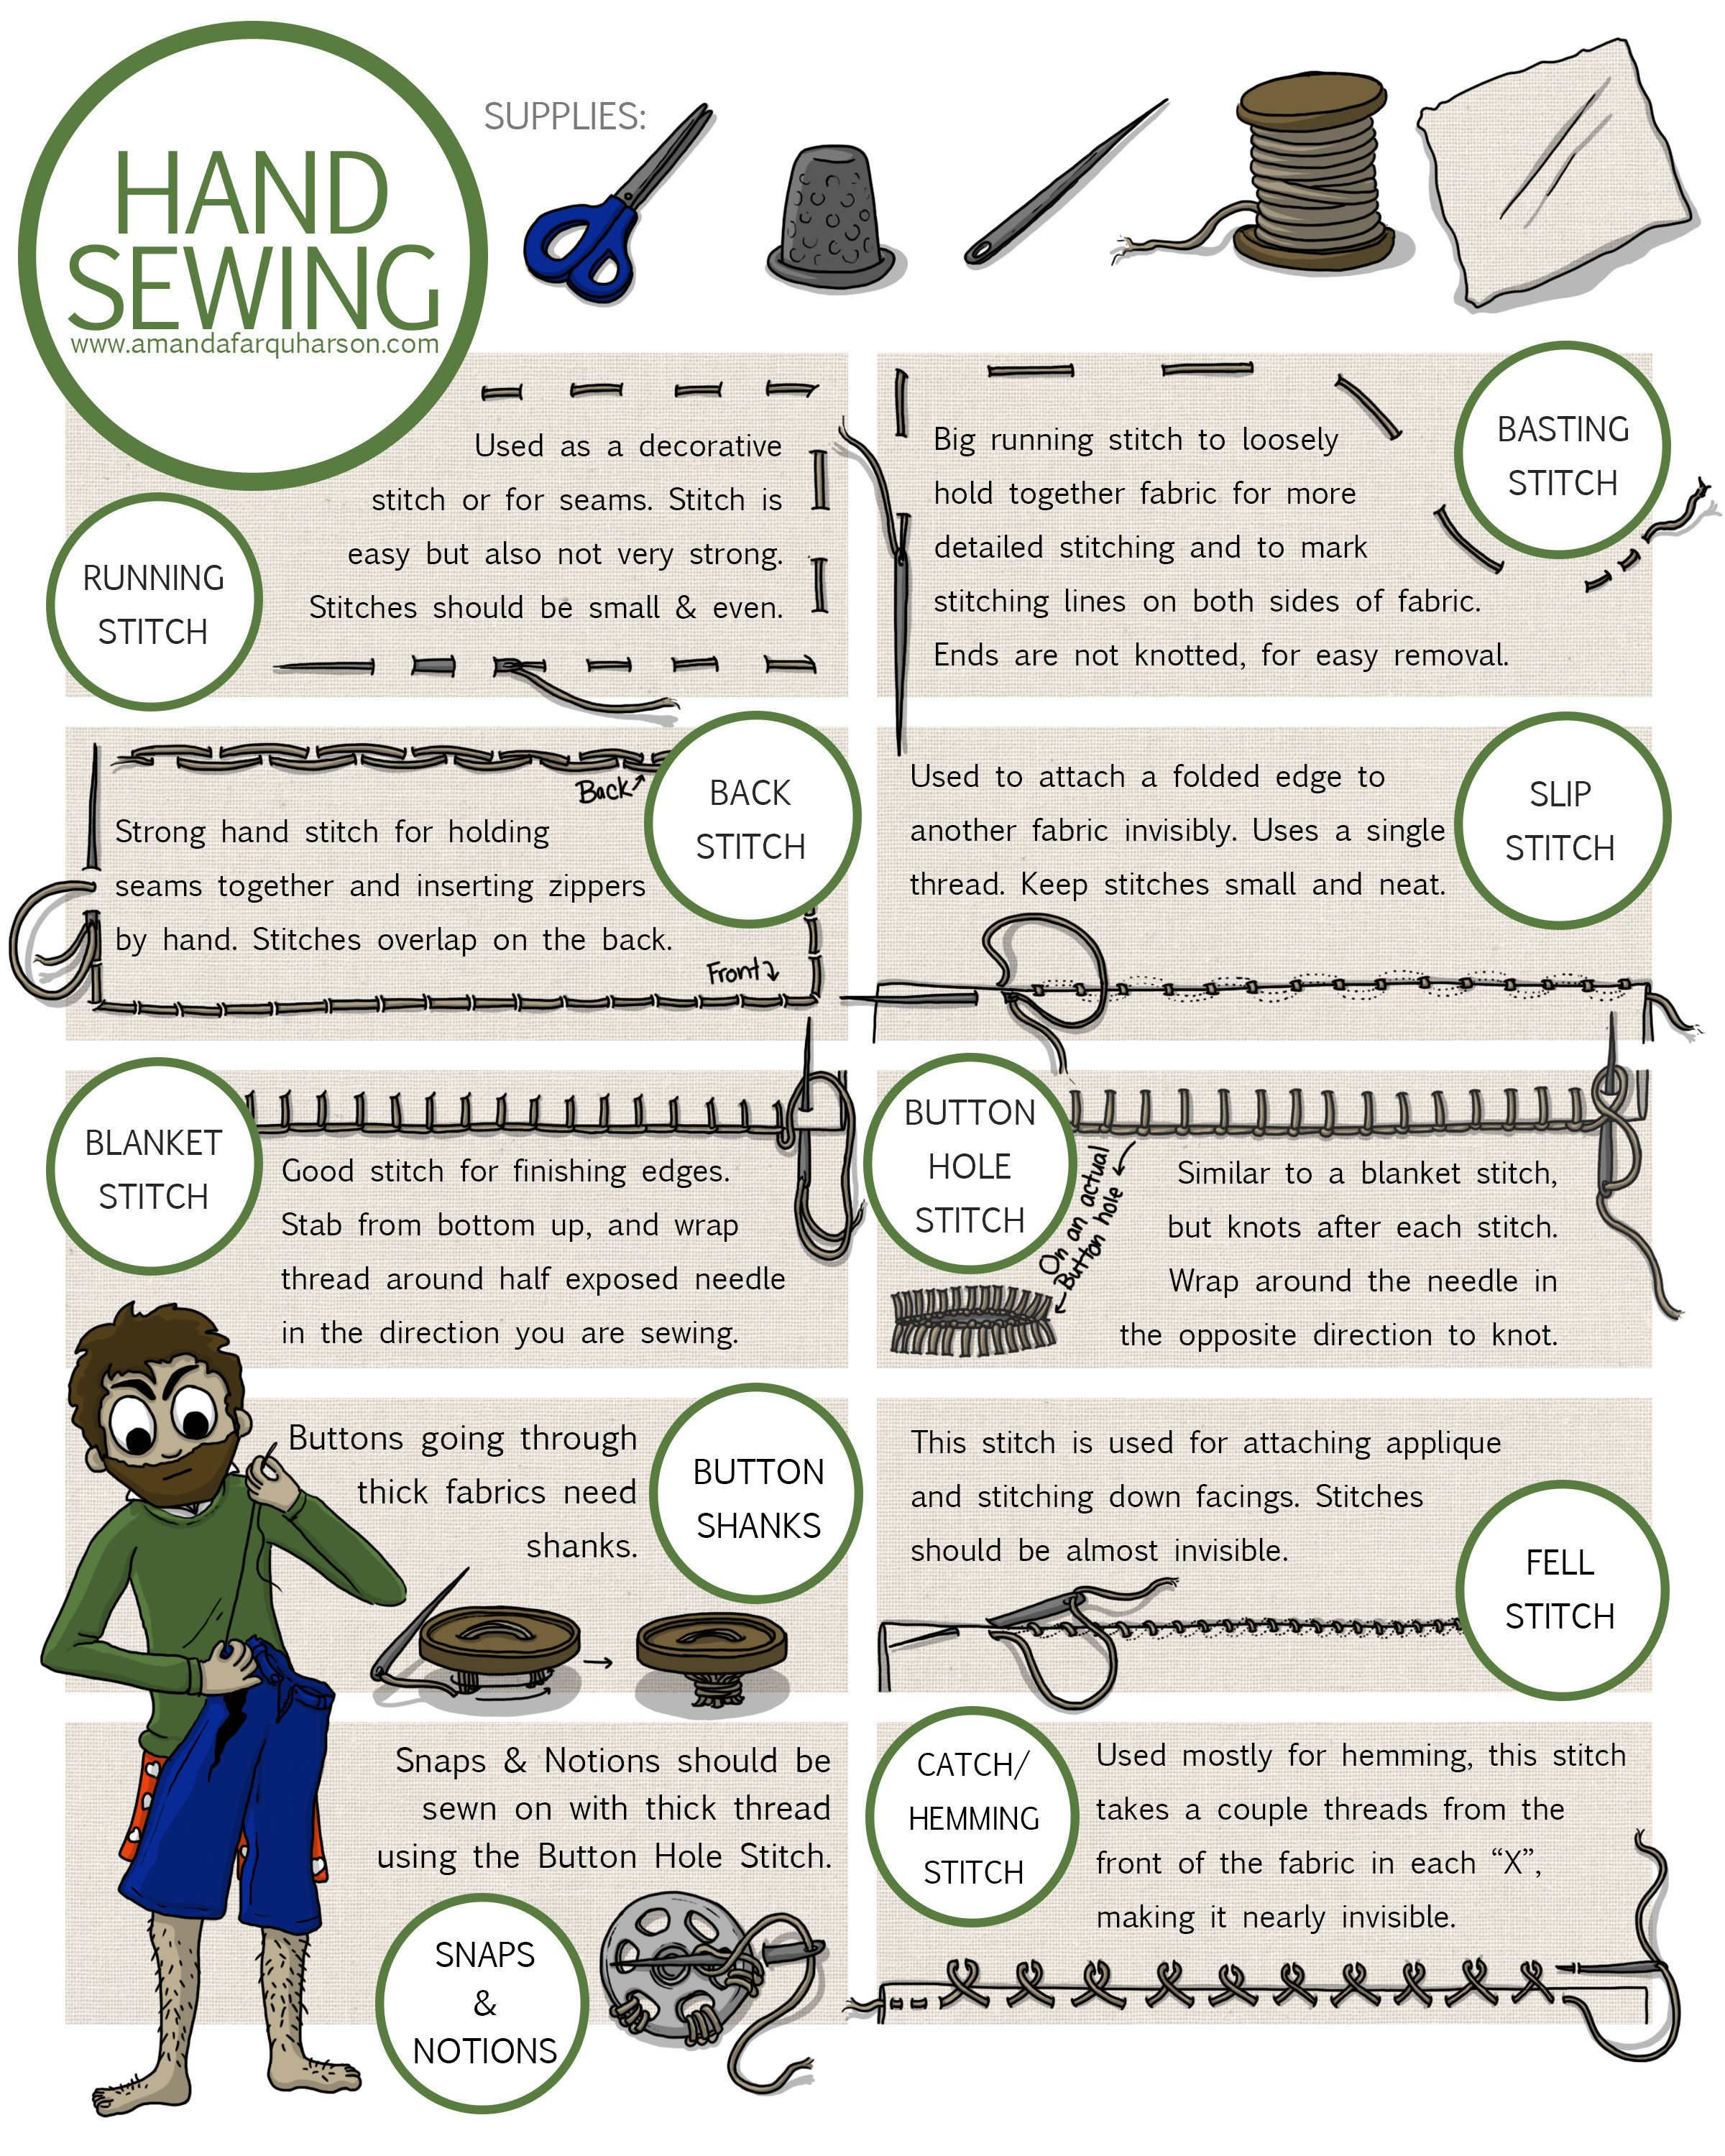 Mar 22 The 8 Most Helpful Hand Sewing Stitches | Nähen